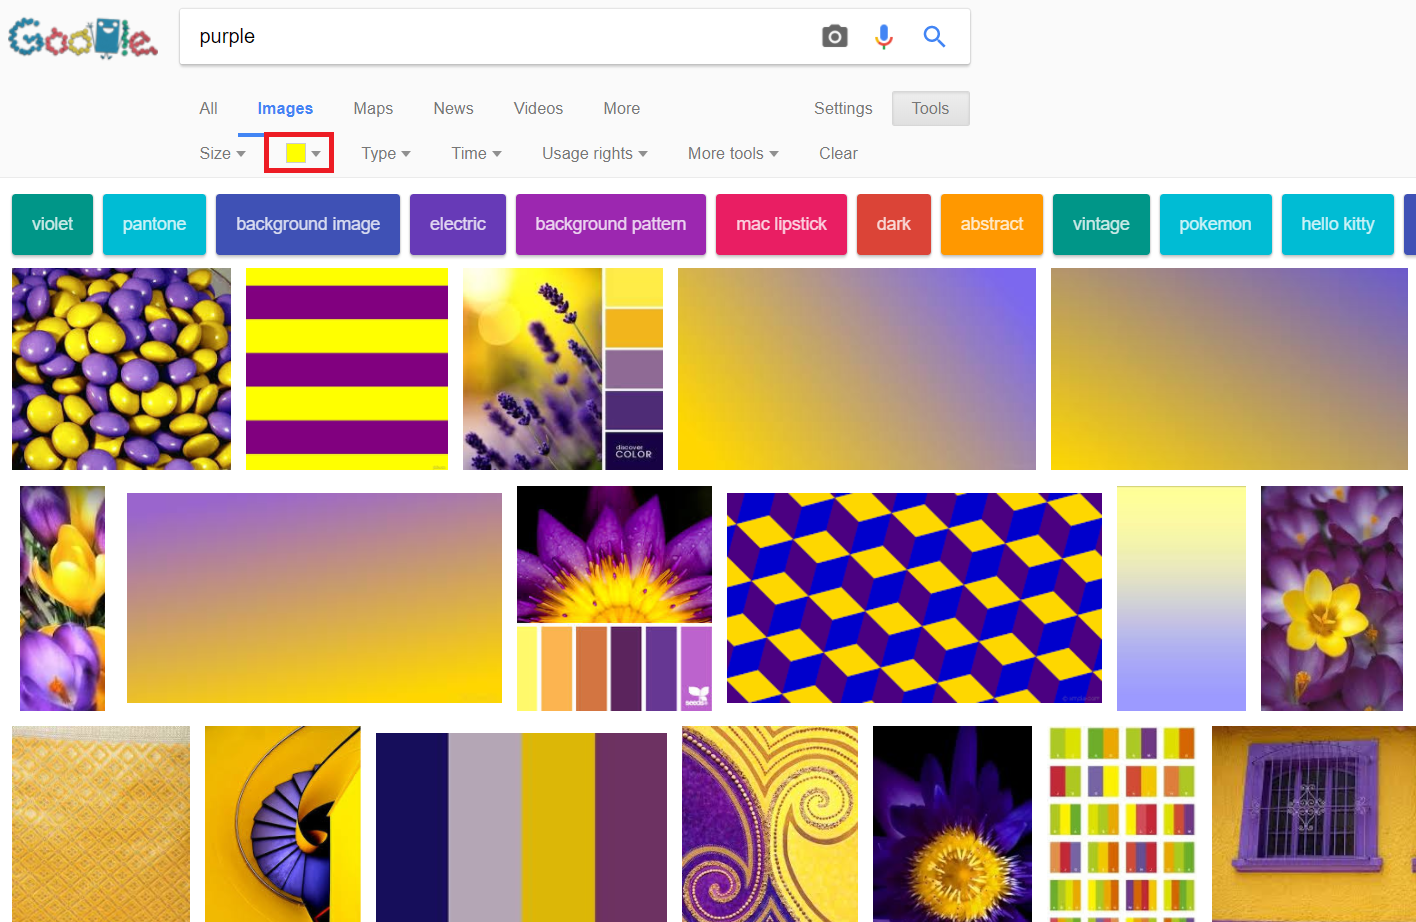 purple with a prominent use of yellow